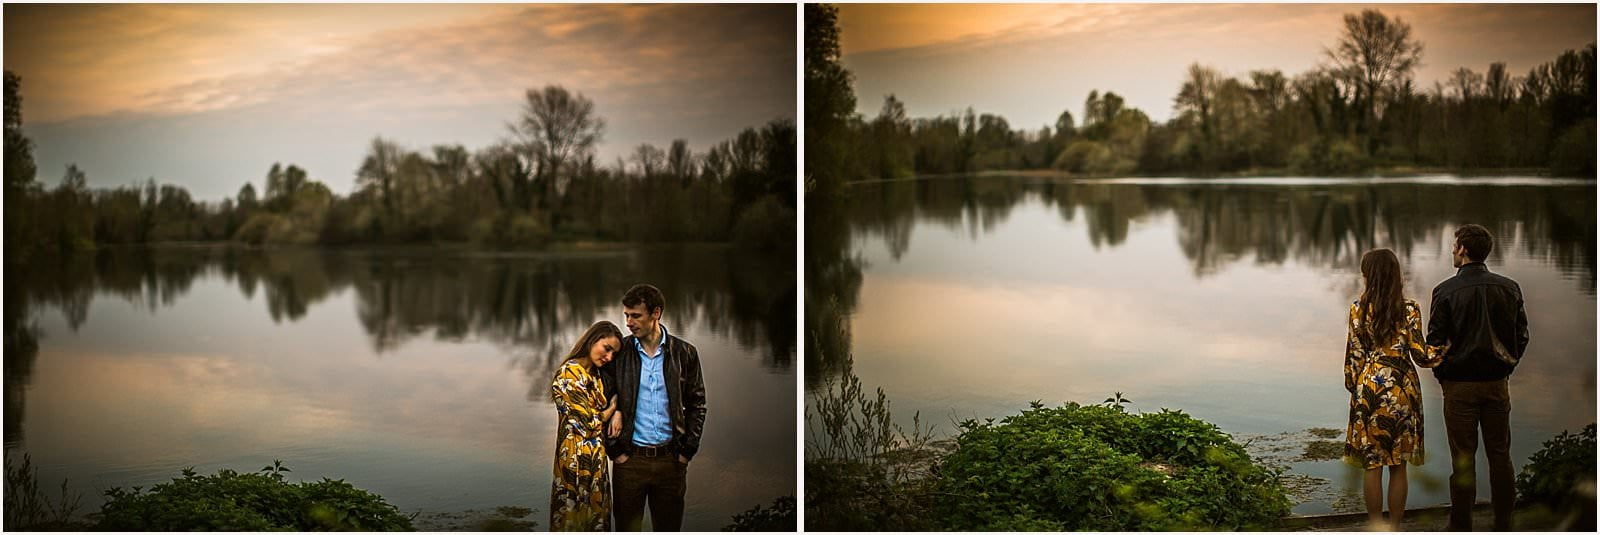 Hampshire Engagement Photography, Andover - C & L 18